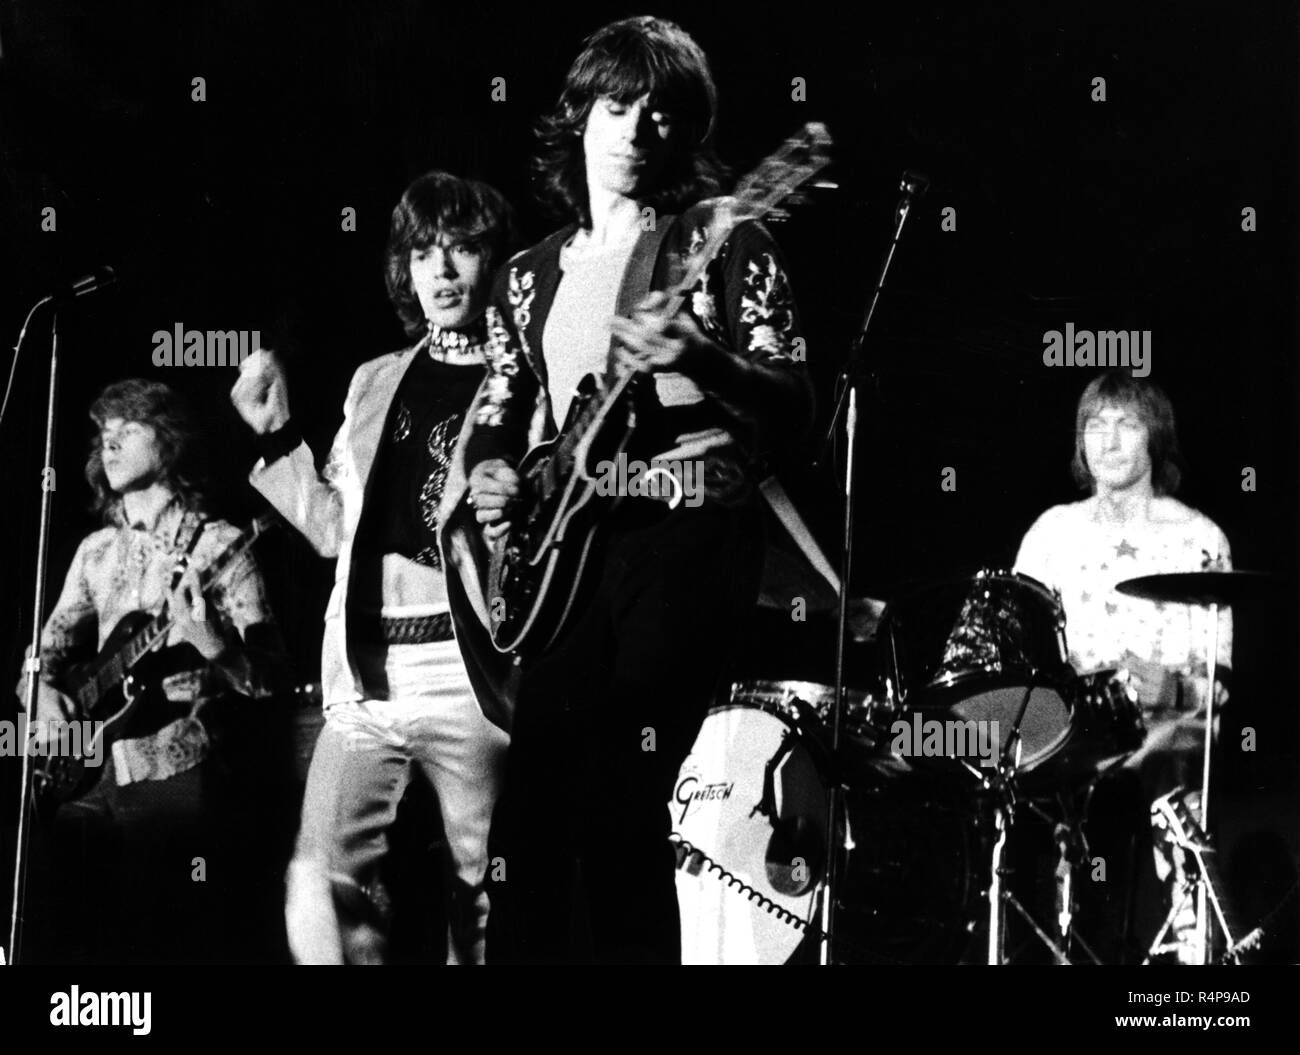 The Rolling Stones on 14 September 1970 on stage in Hamburg (Germany). L-r: Mick Taylor, Mick Jagger, Keith Richards and Charlie Watts.   usage worldwide - Stock Image